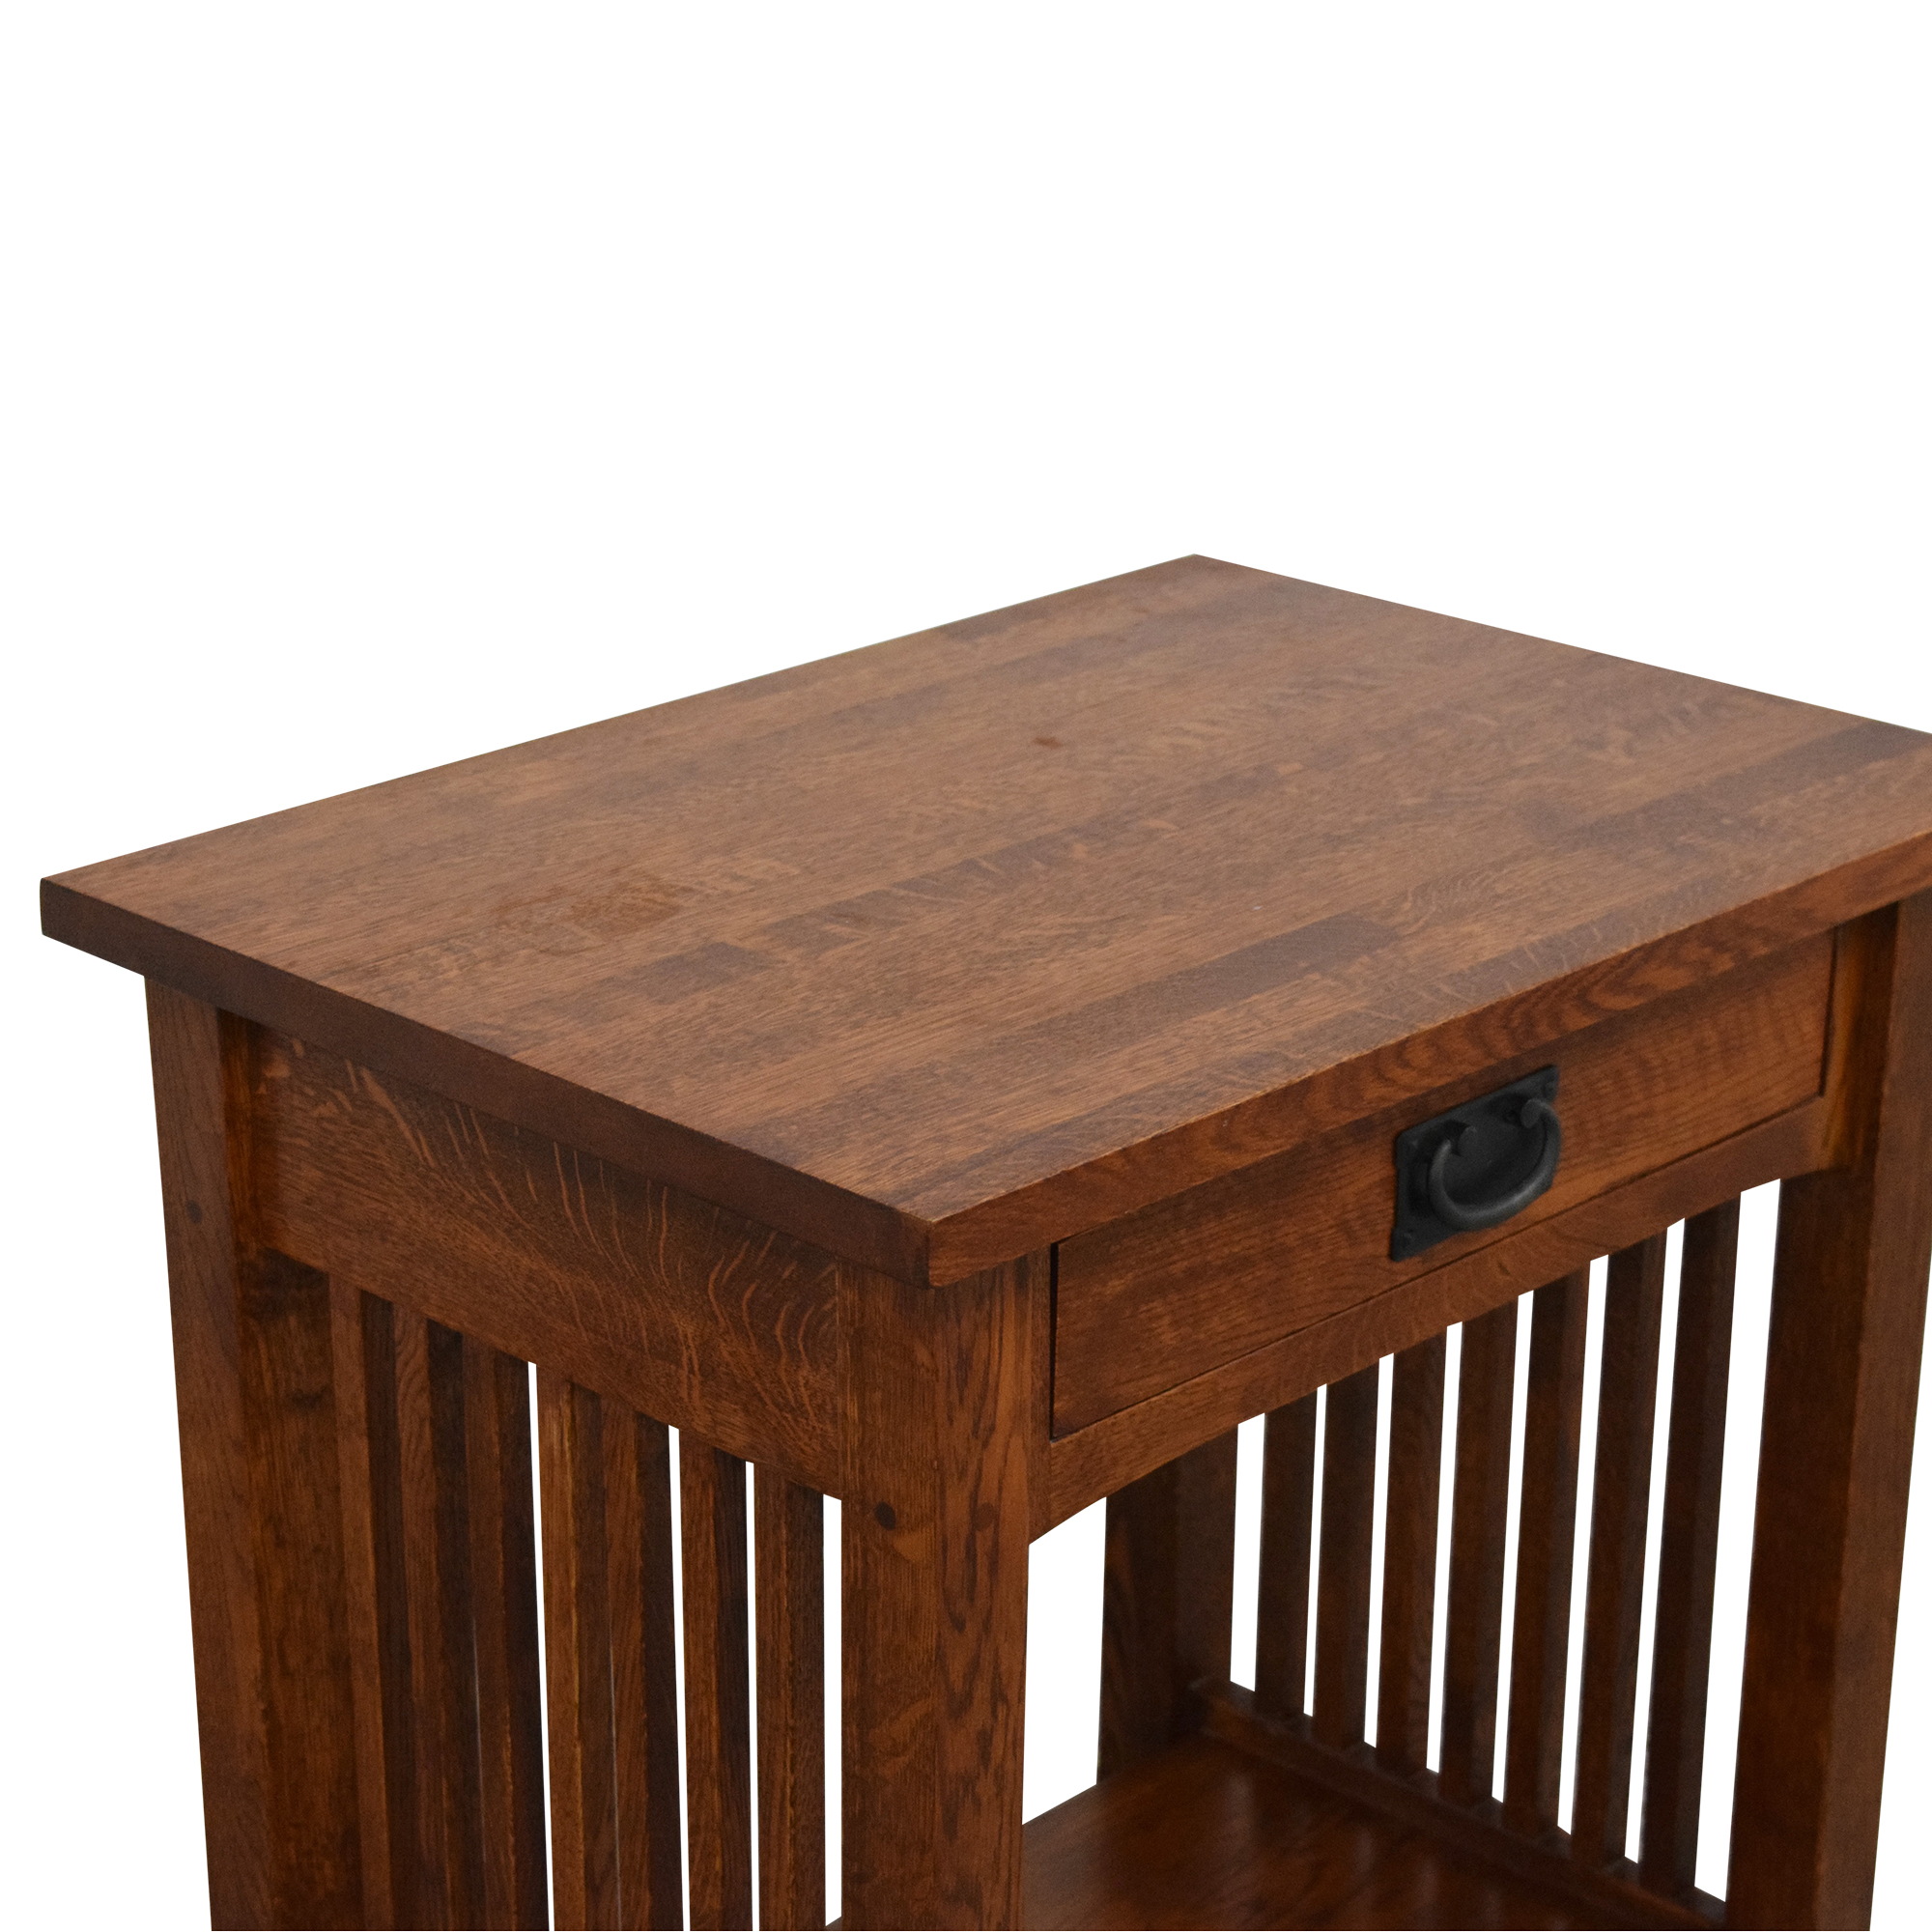 ABC Carpet & Home ABC Carpet & Home Mission-Style Nightstand Tables